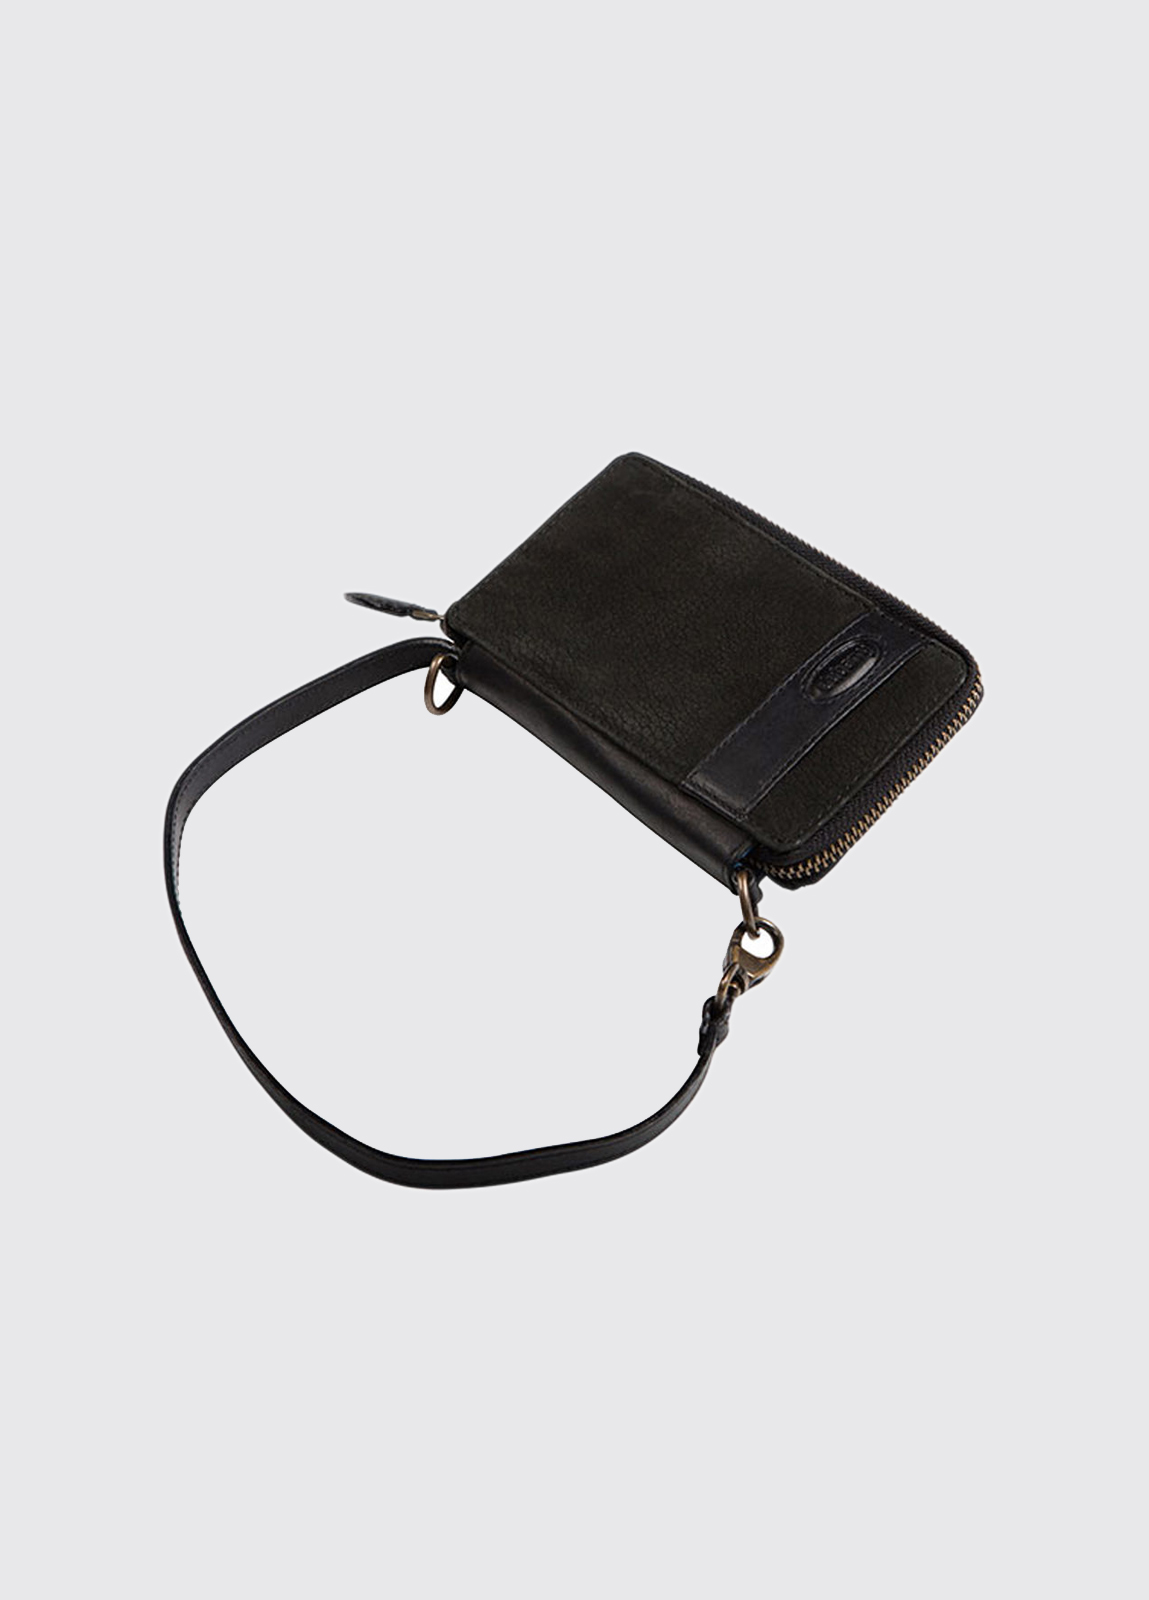 Emyvale Leather Purse - Black